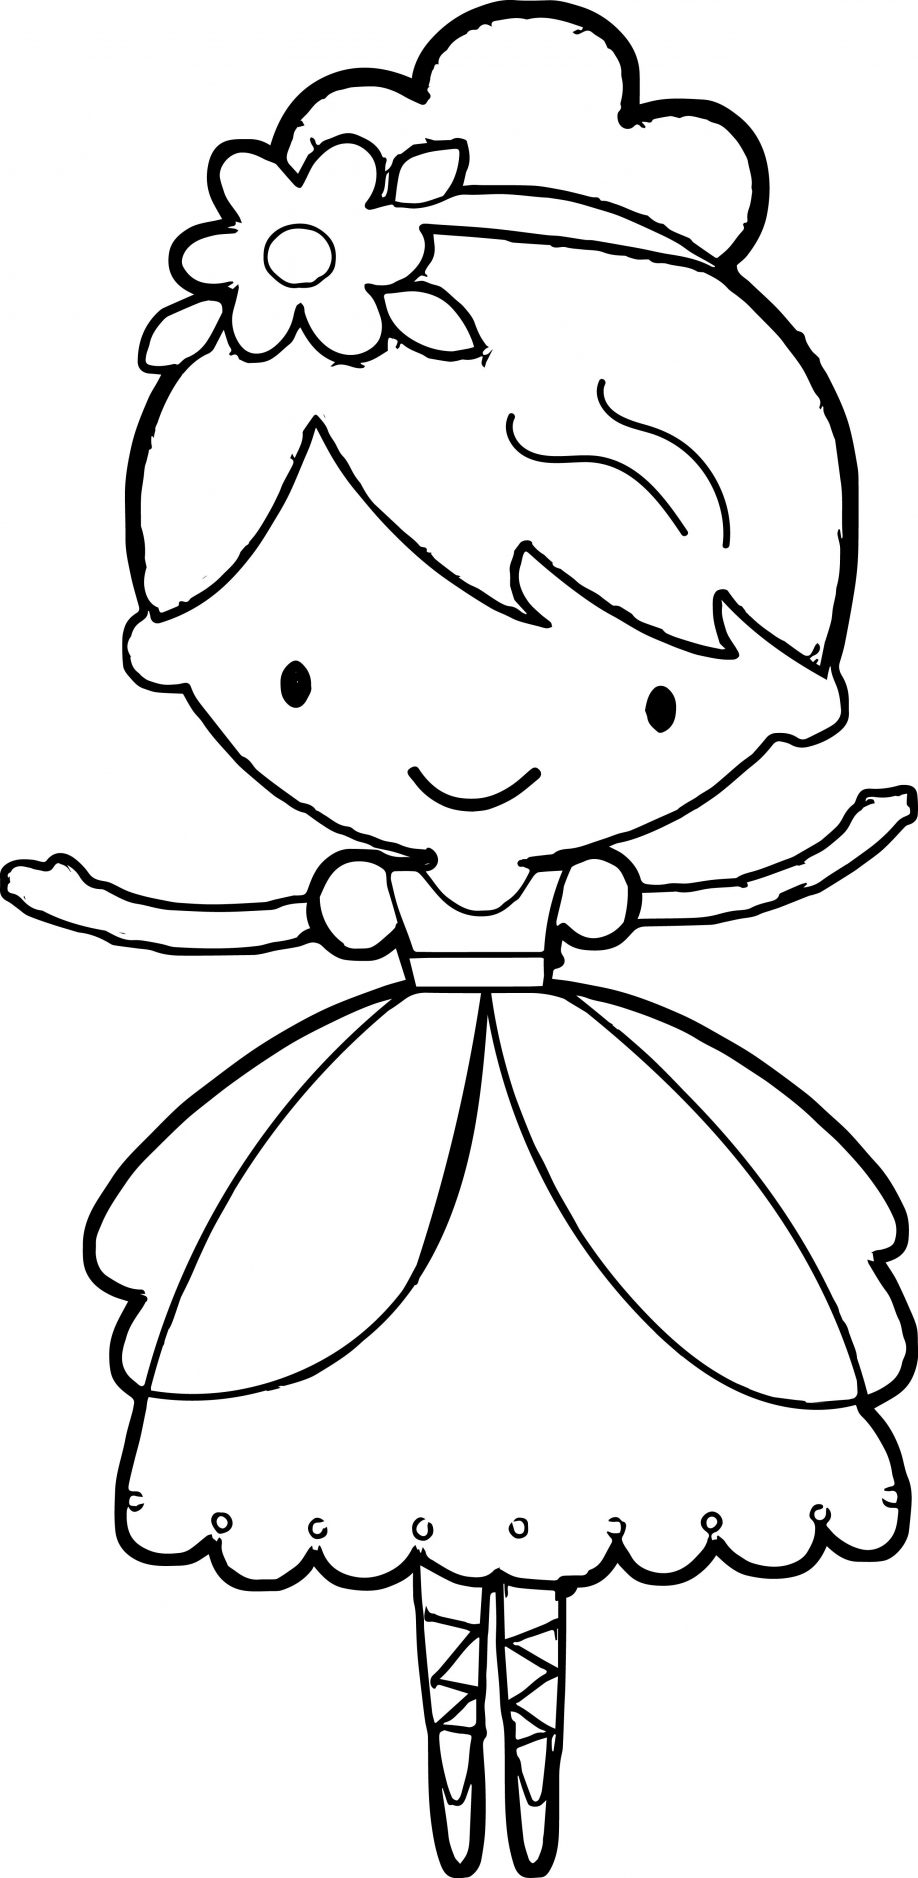 918x1878 Ballerina Coloring Page